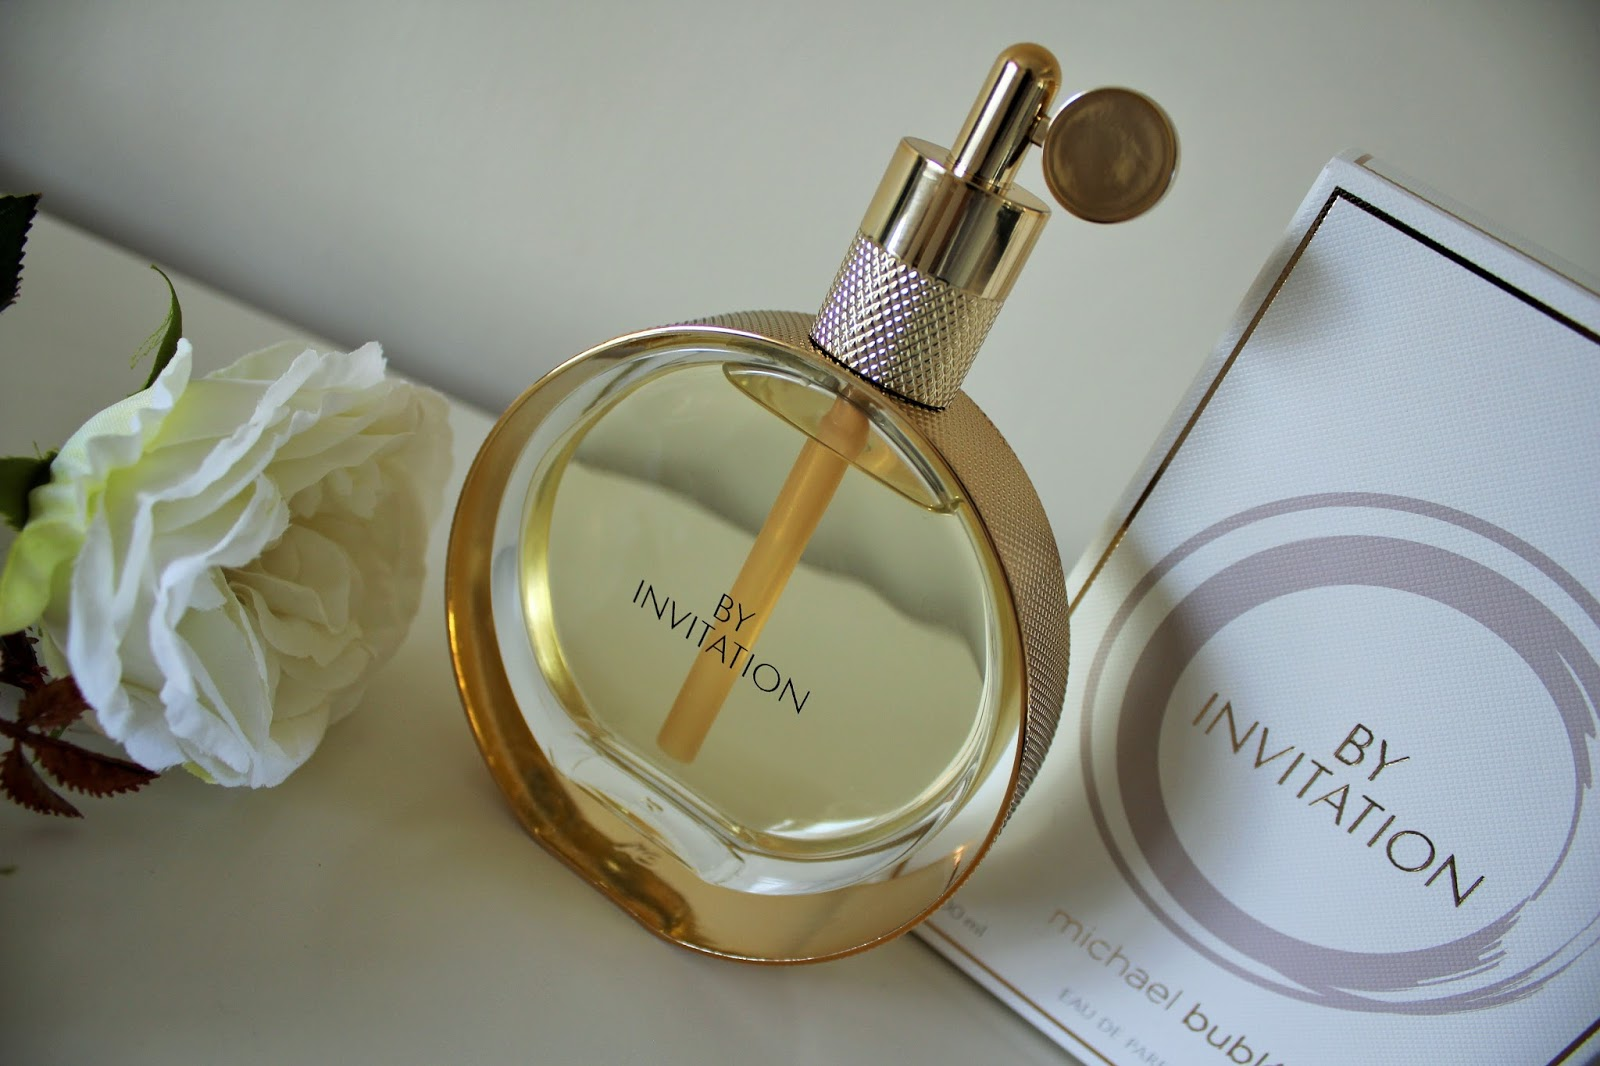 Michael Buble By Invitation Perfume Review 3